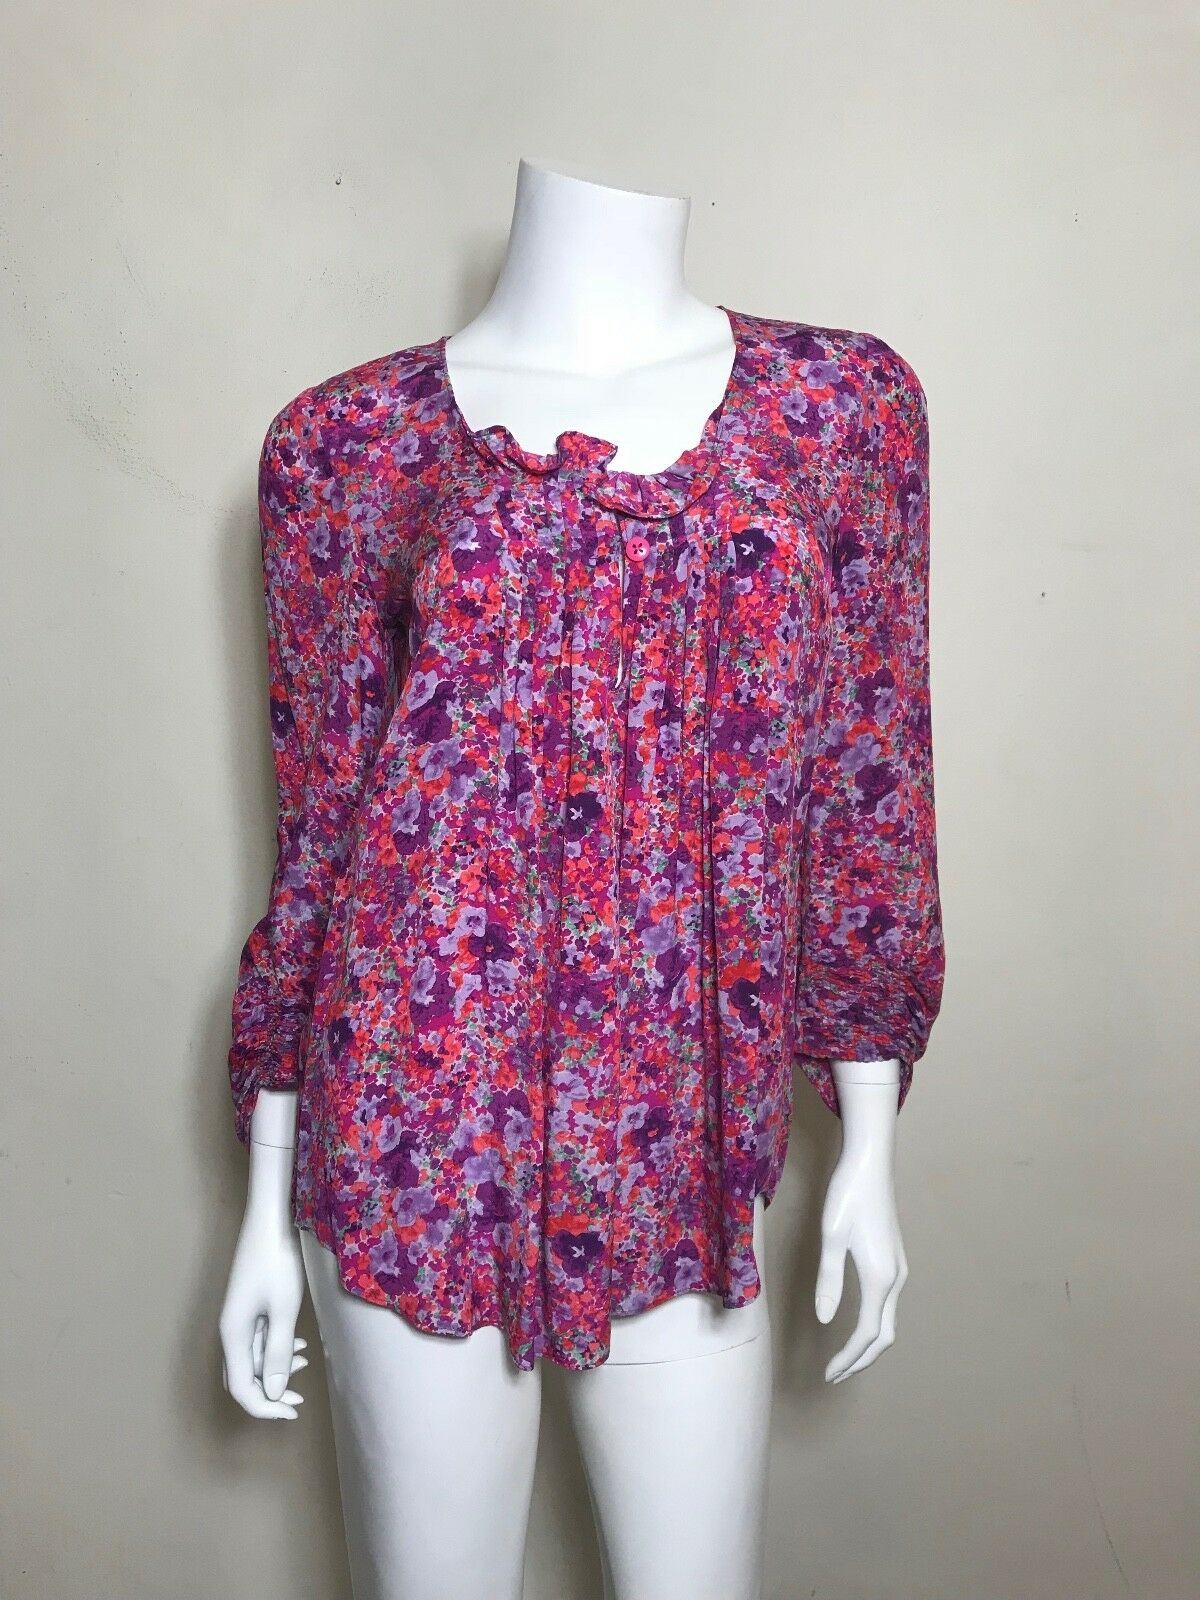 Rebecca Taylor Silk Floral Blouse in Rosa lila Größe 2